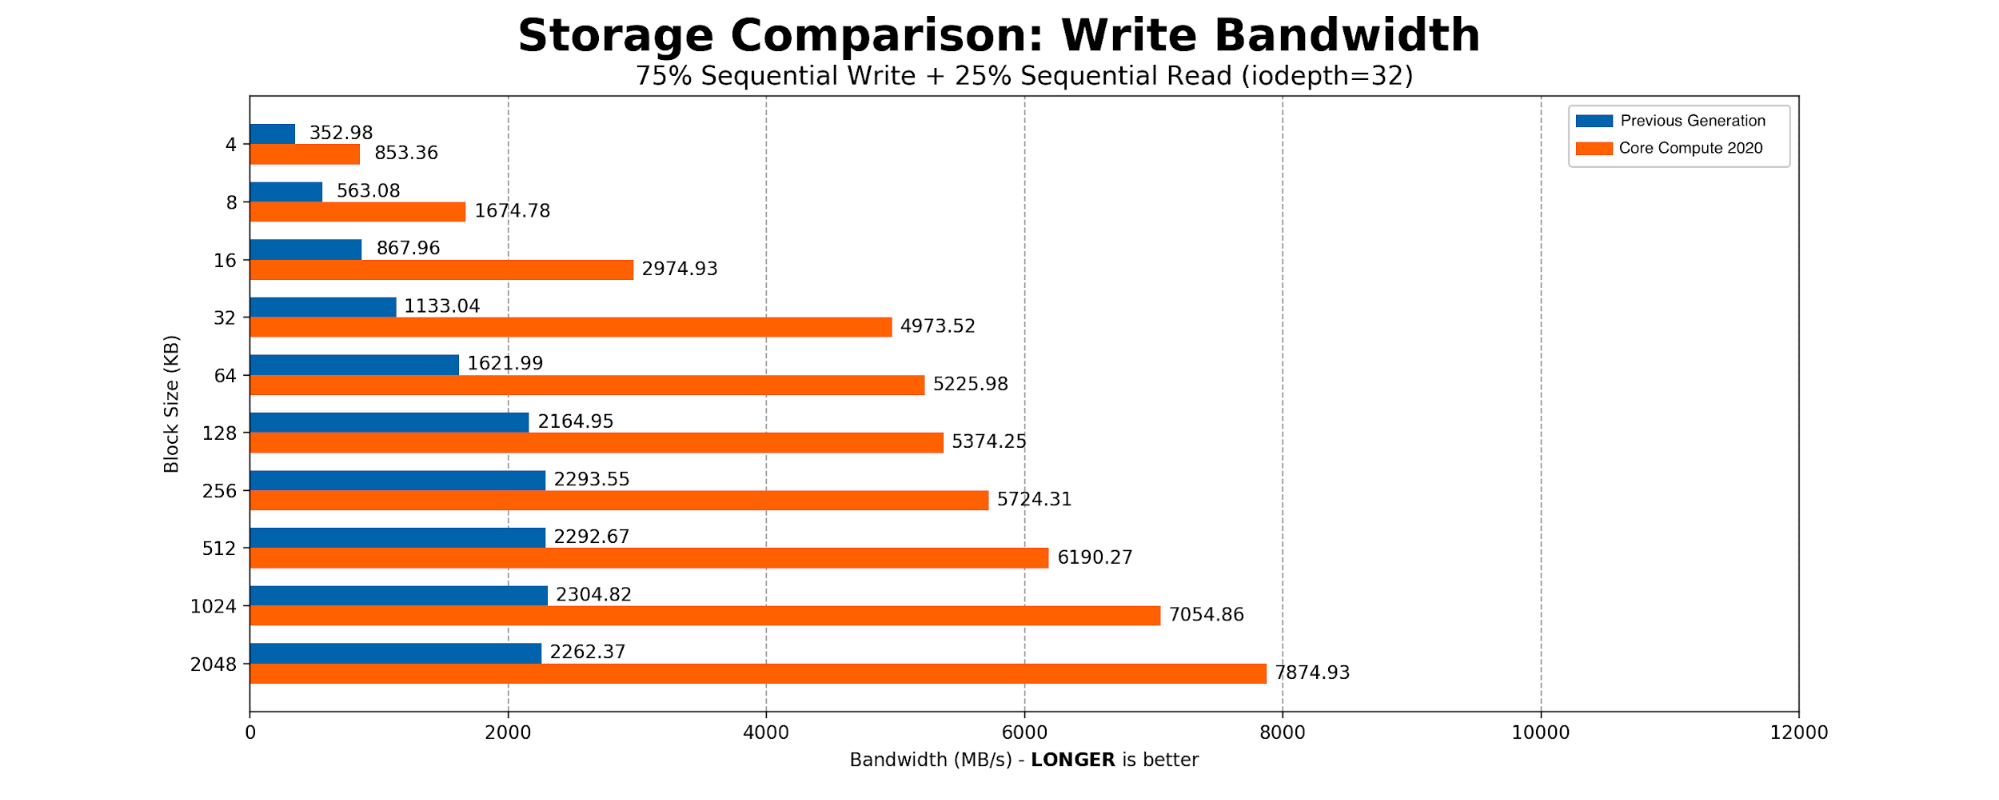 Getting to the Core: Benchmarking Cloudflare's Latest Server Hardware